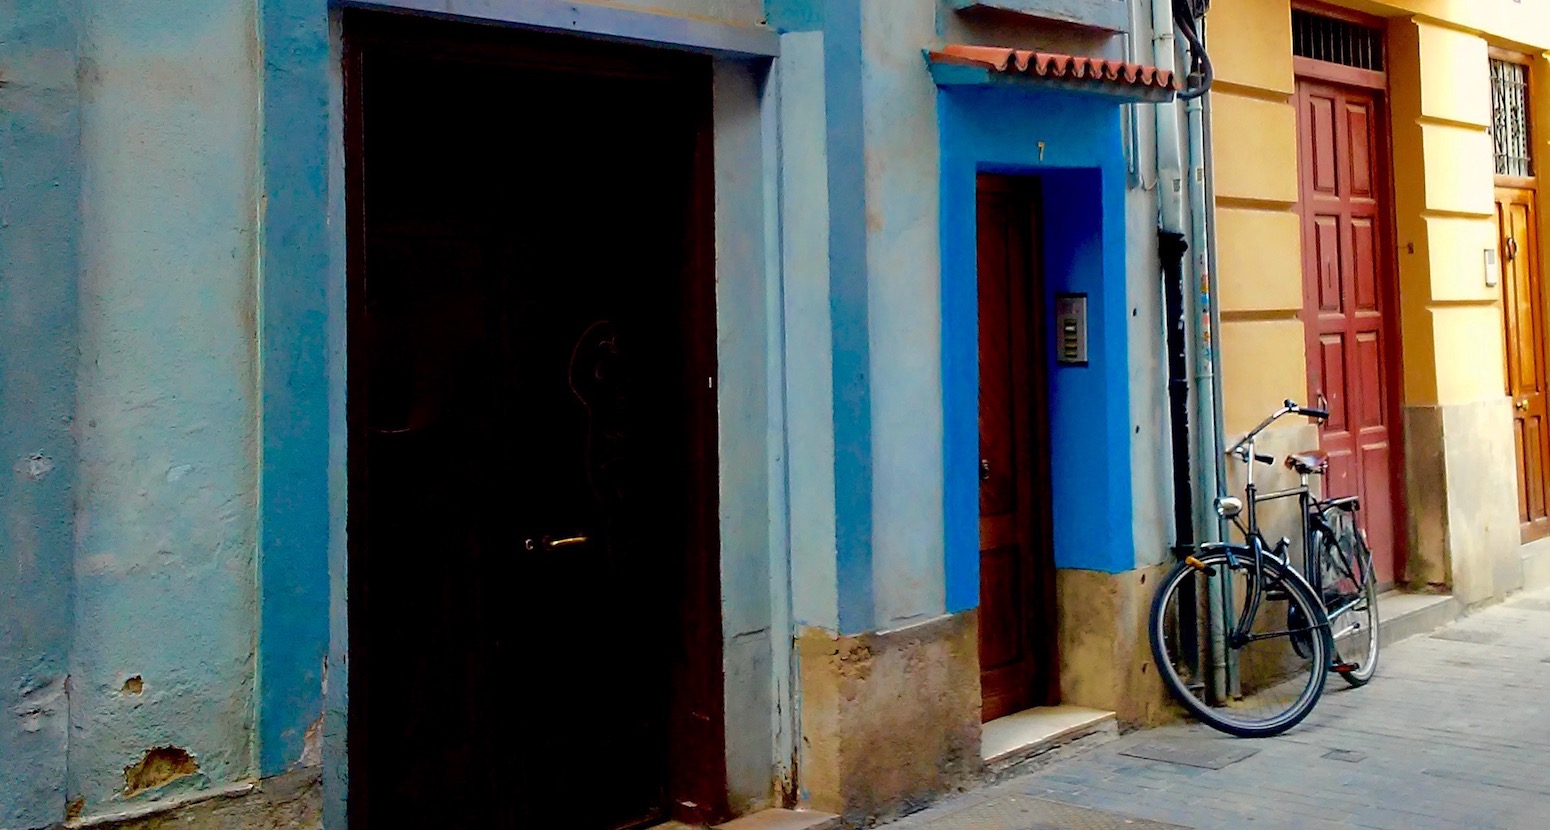 Old bicycle against a wall in a colorful Spanishstreet